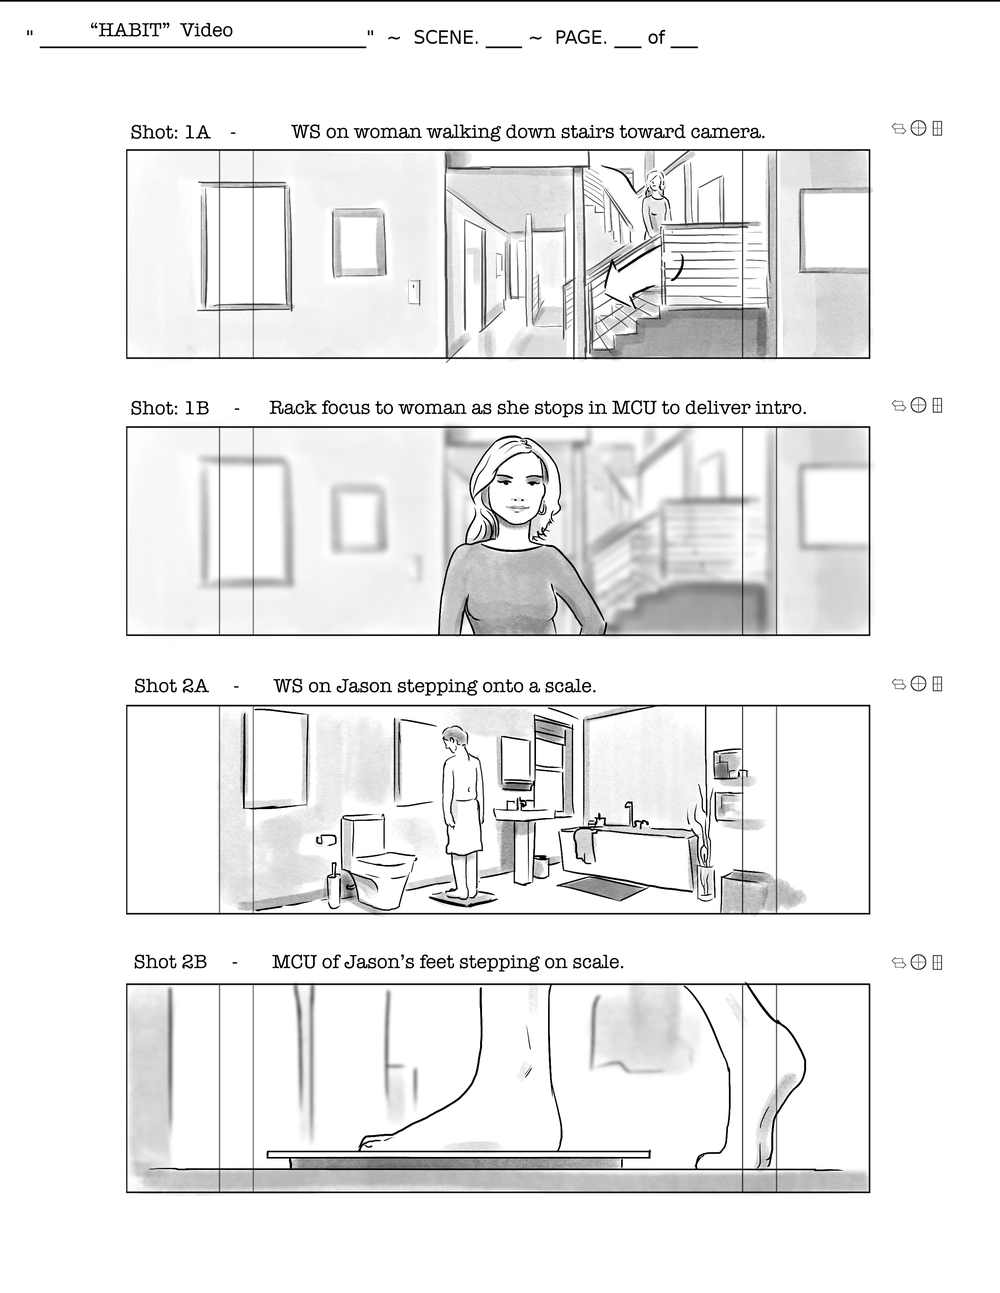 1_Habit_Storyboards_Page_1.png